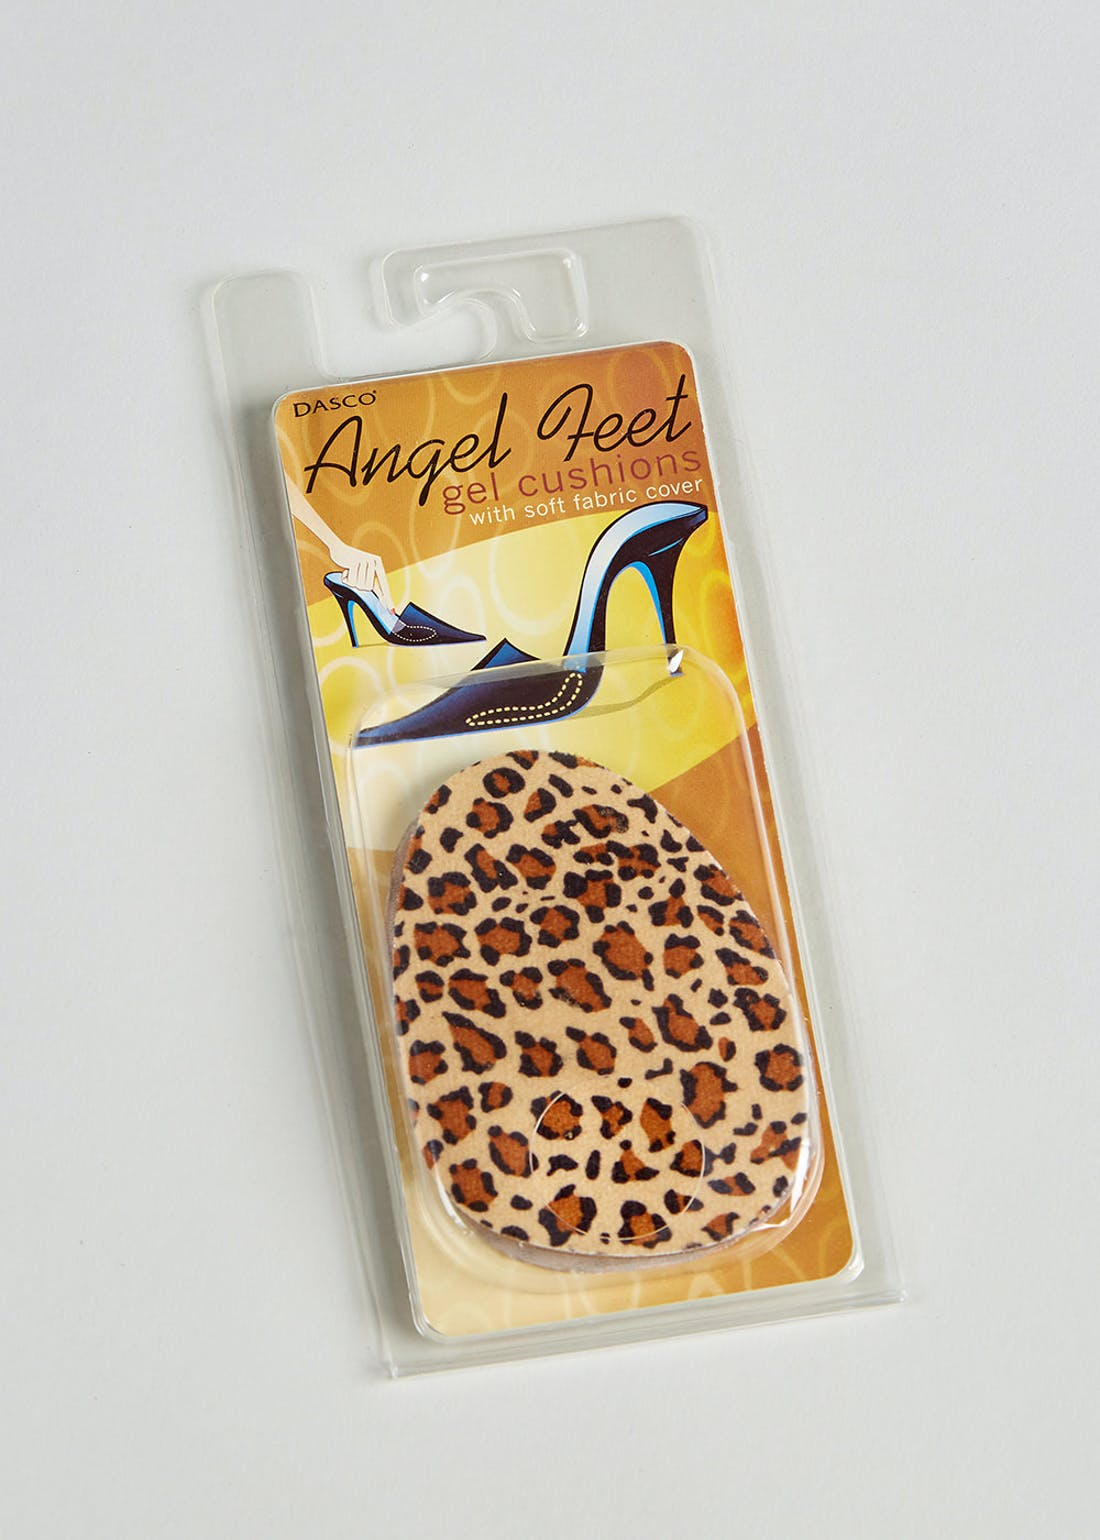 Dasco Angel Feet Leopard Gel Cushion Insoles